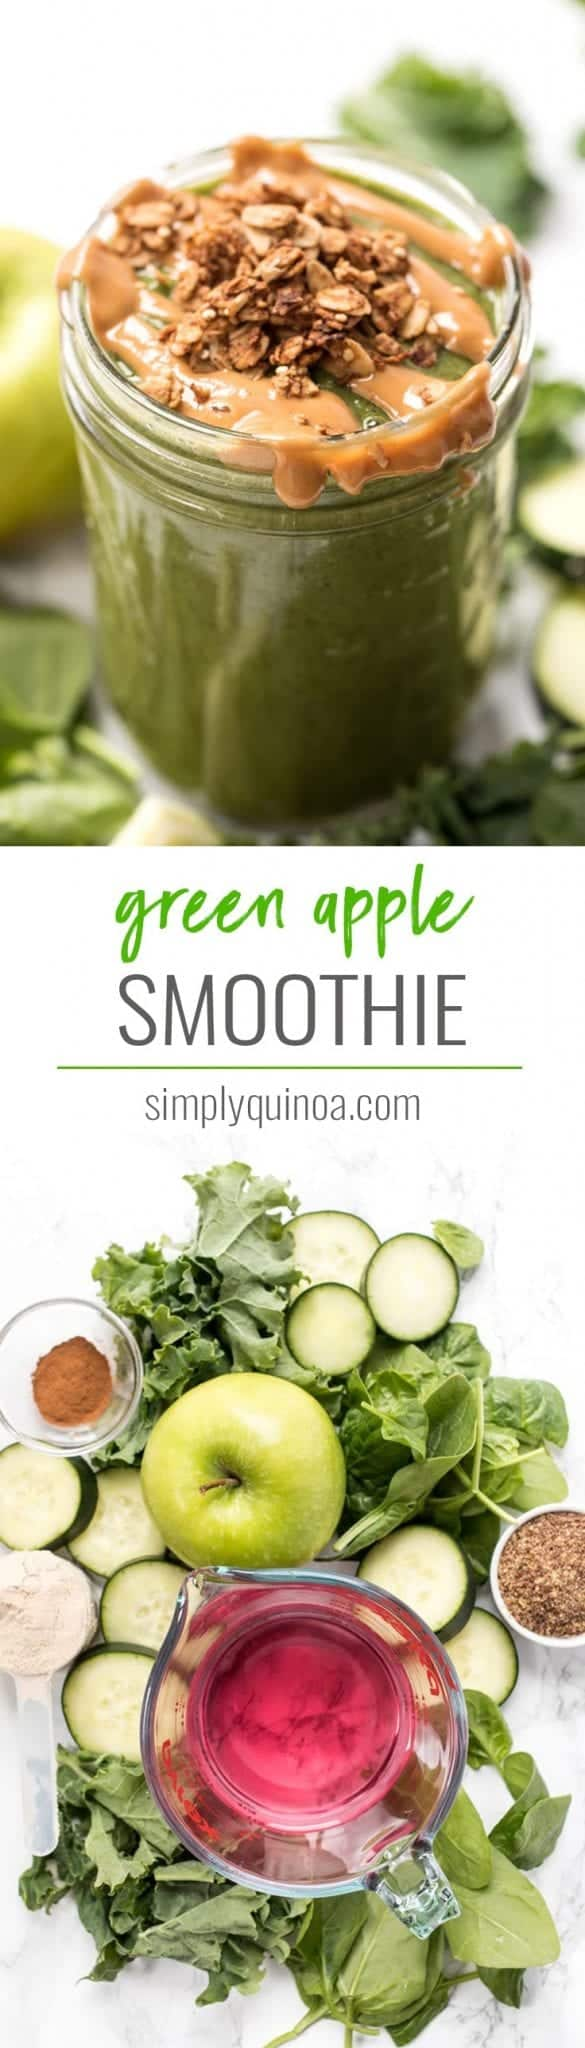 green apple smoothie recipe with protein and fiber